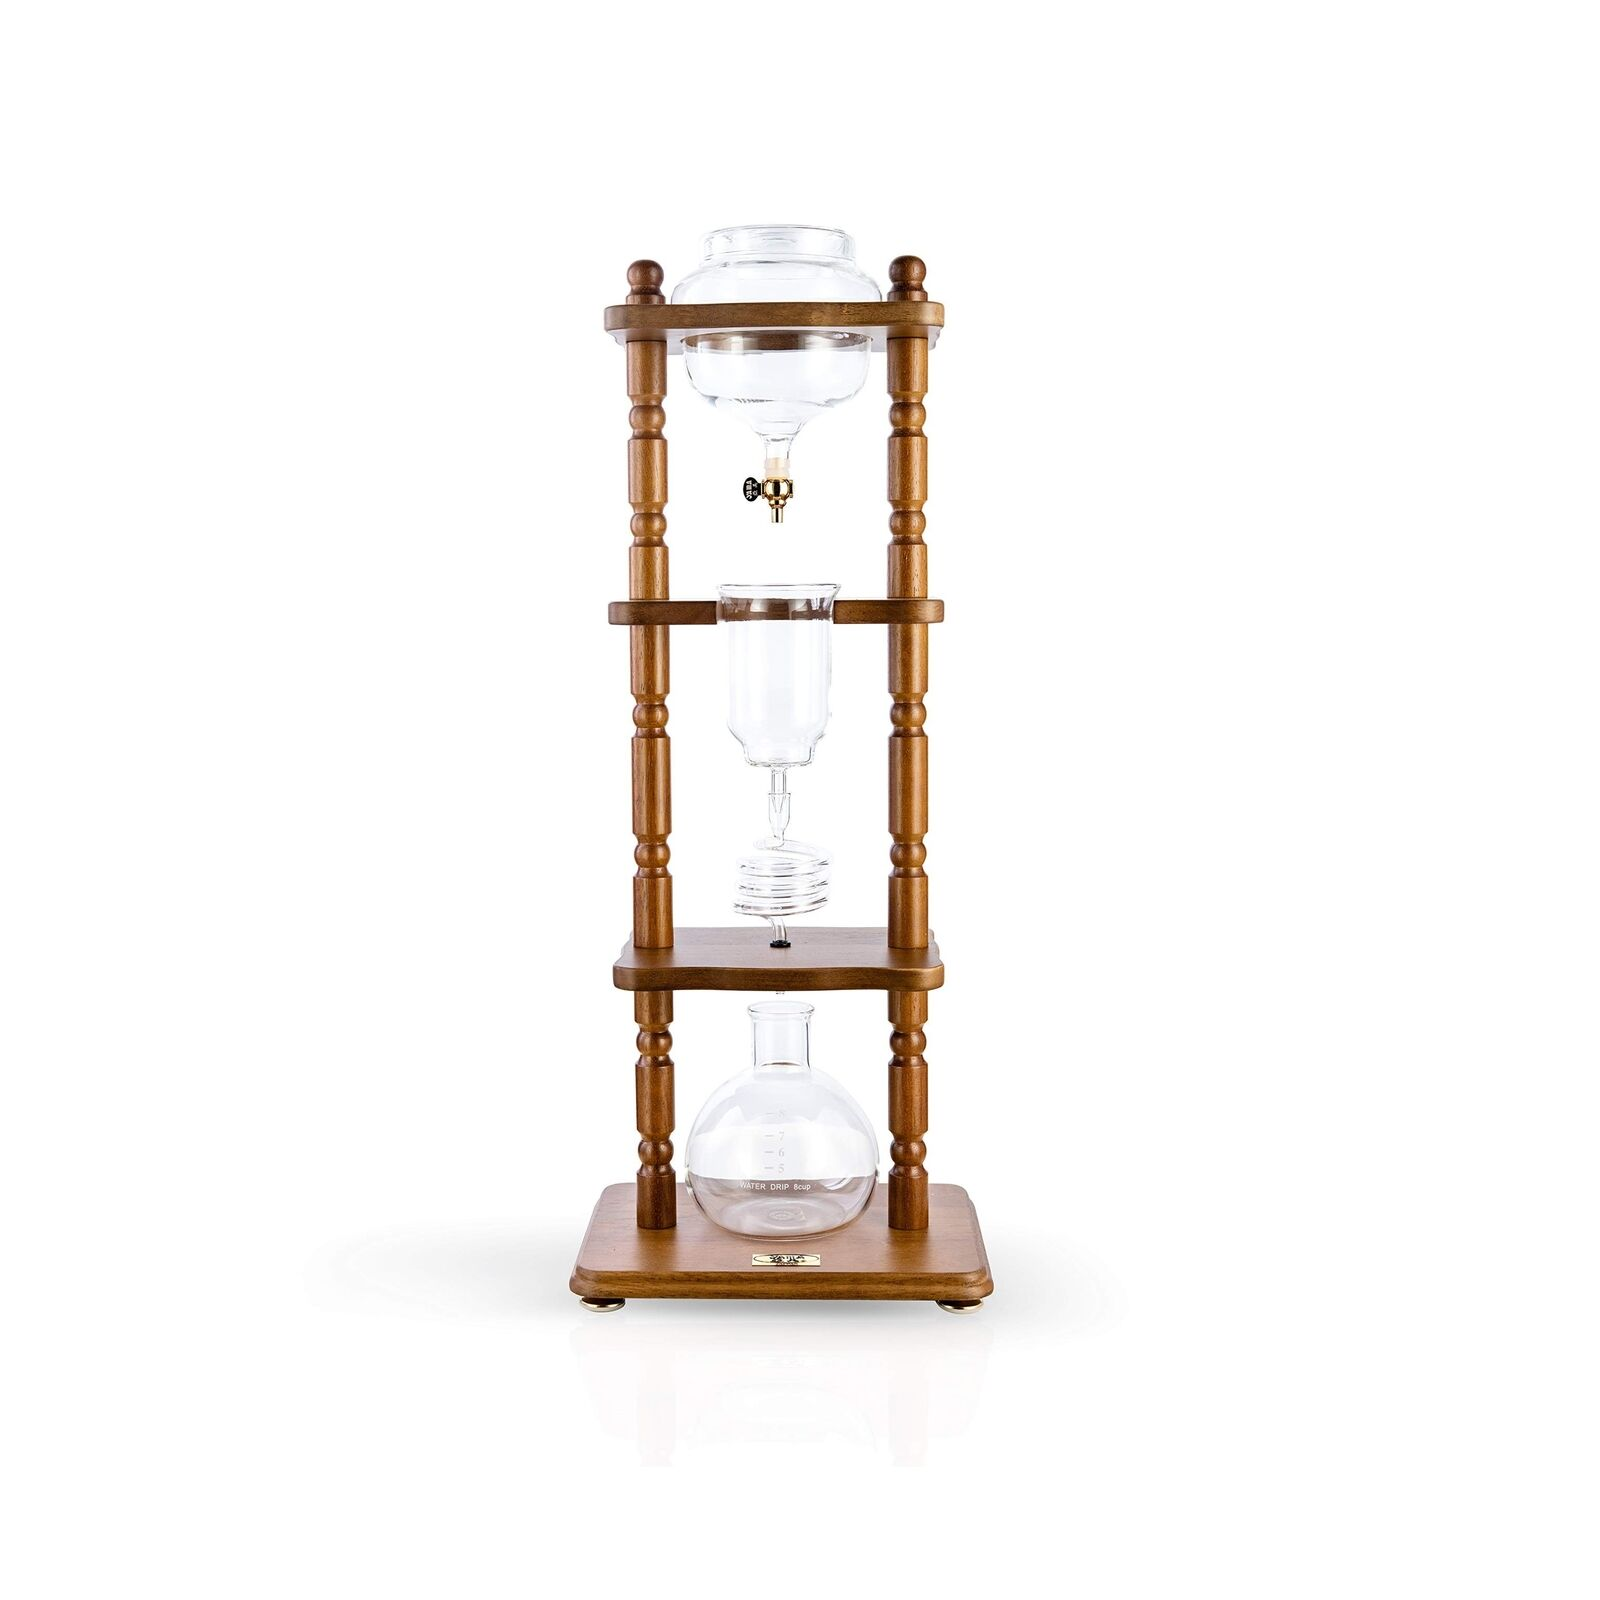 Yama Glass 6-8 Cup Cold Drip Maker Curved marron Stain Wood Frame Coffee Maker